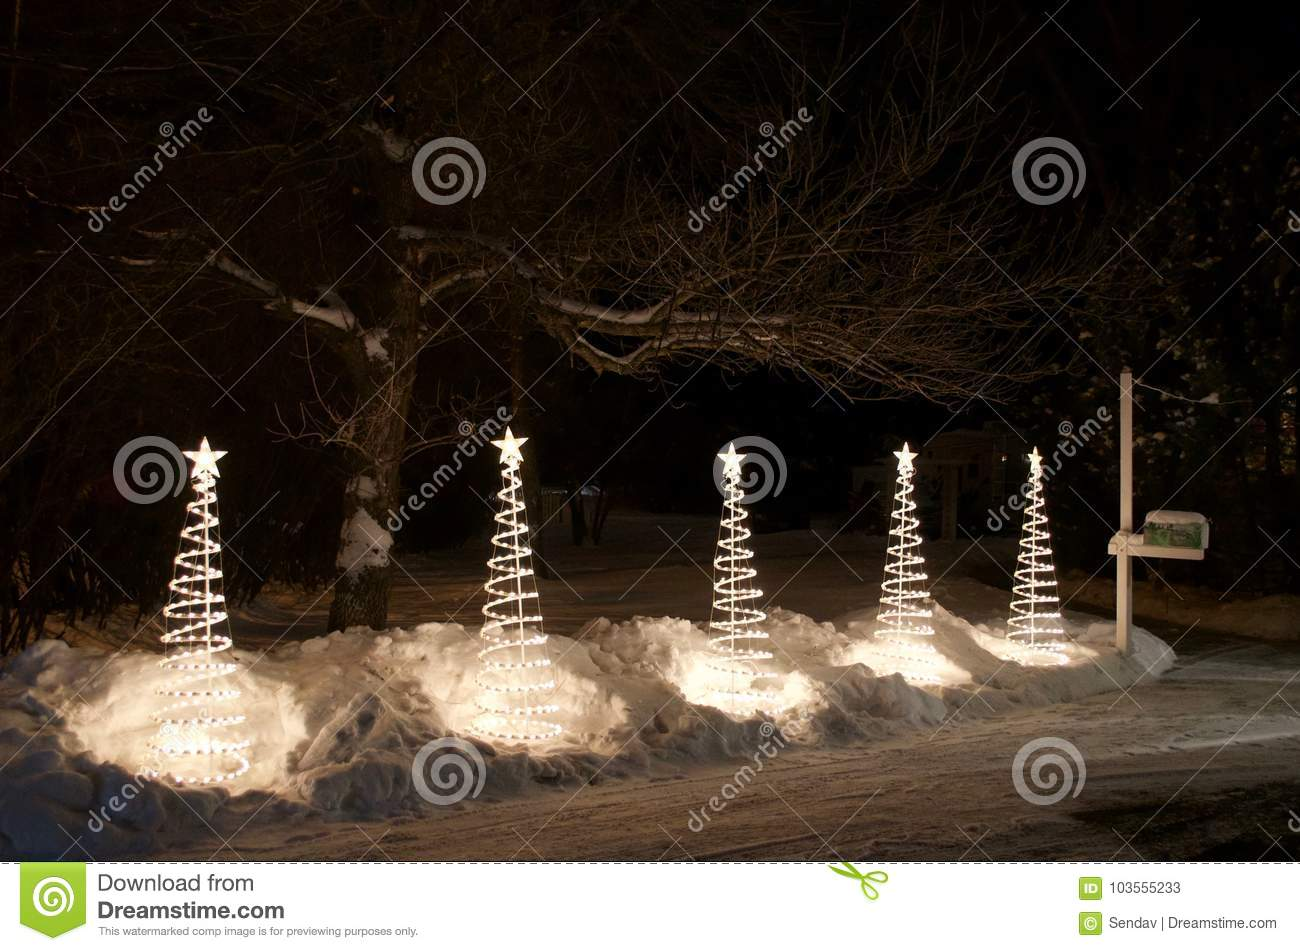 Light Up Outdoor Christmas Decorations.Abstract White Outdoor Christmas Decorations Stock Image